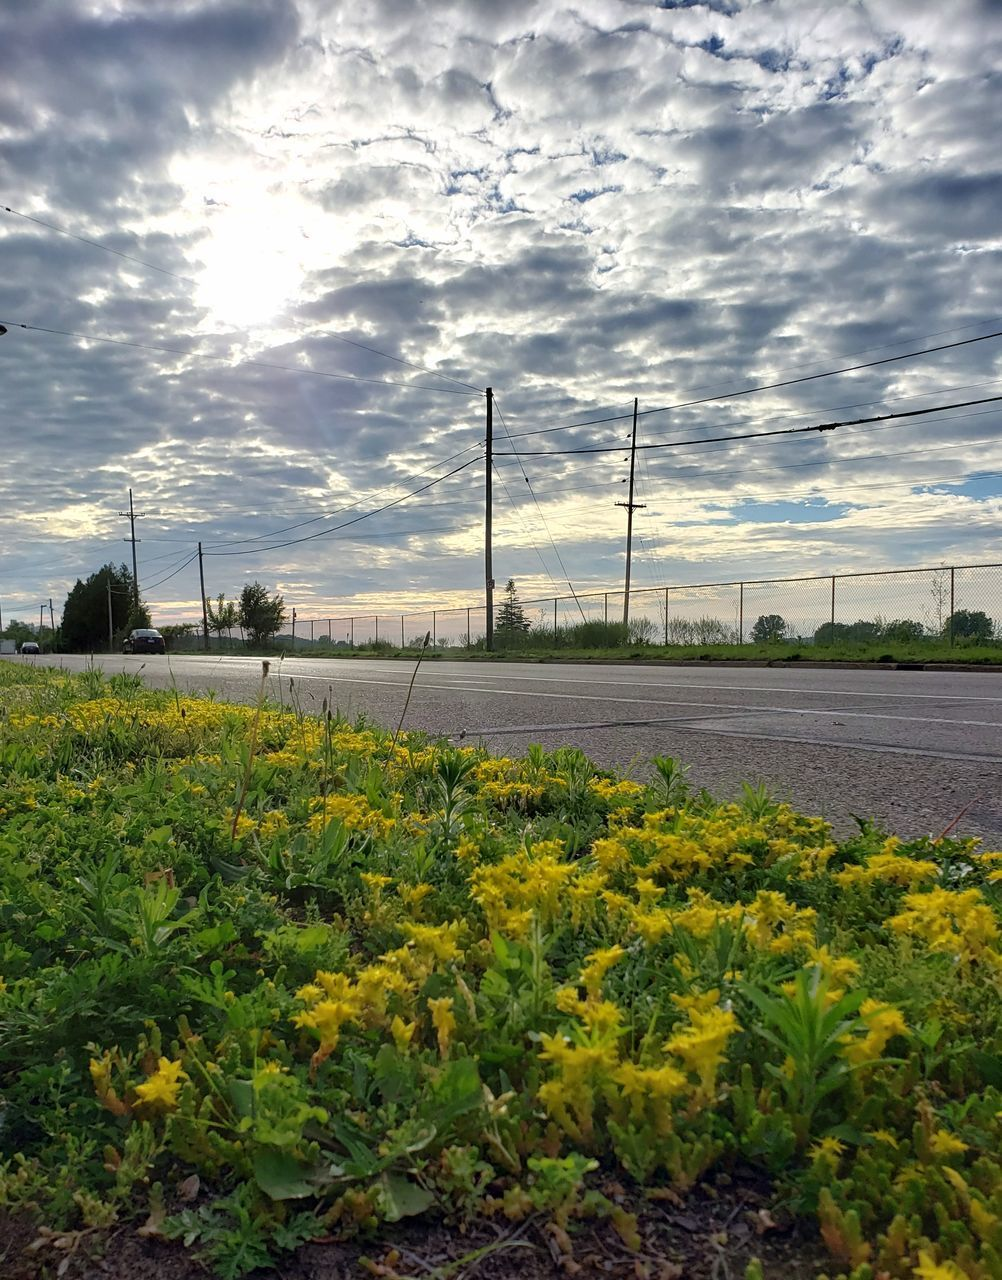 sky, cloud - sky, plant, nature, no people, growth, yellow, beauty in nature, field, flower, land, flowering plant, electricity pylon, electricity, day, landscape, fuel and power generation, agriculture, environment, tranquility, outdoors, power supply